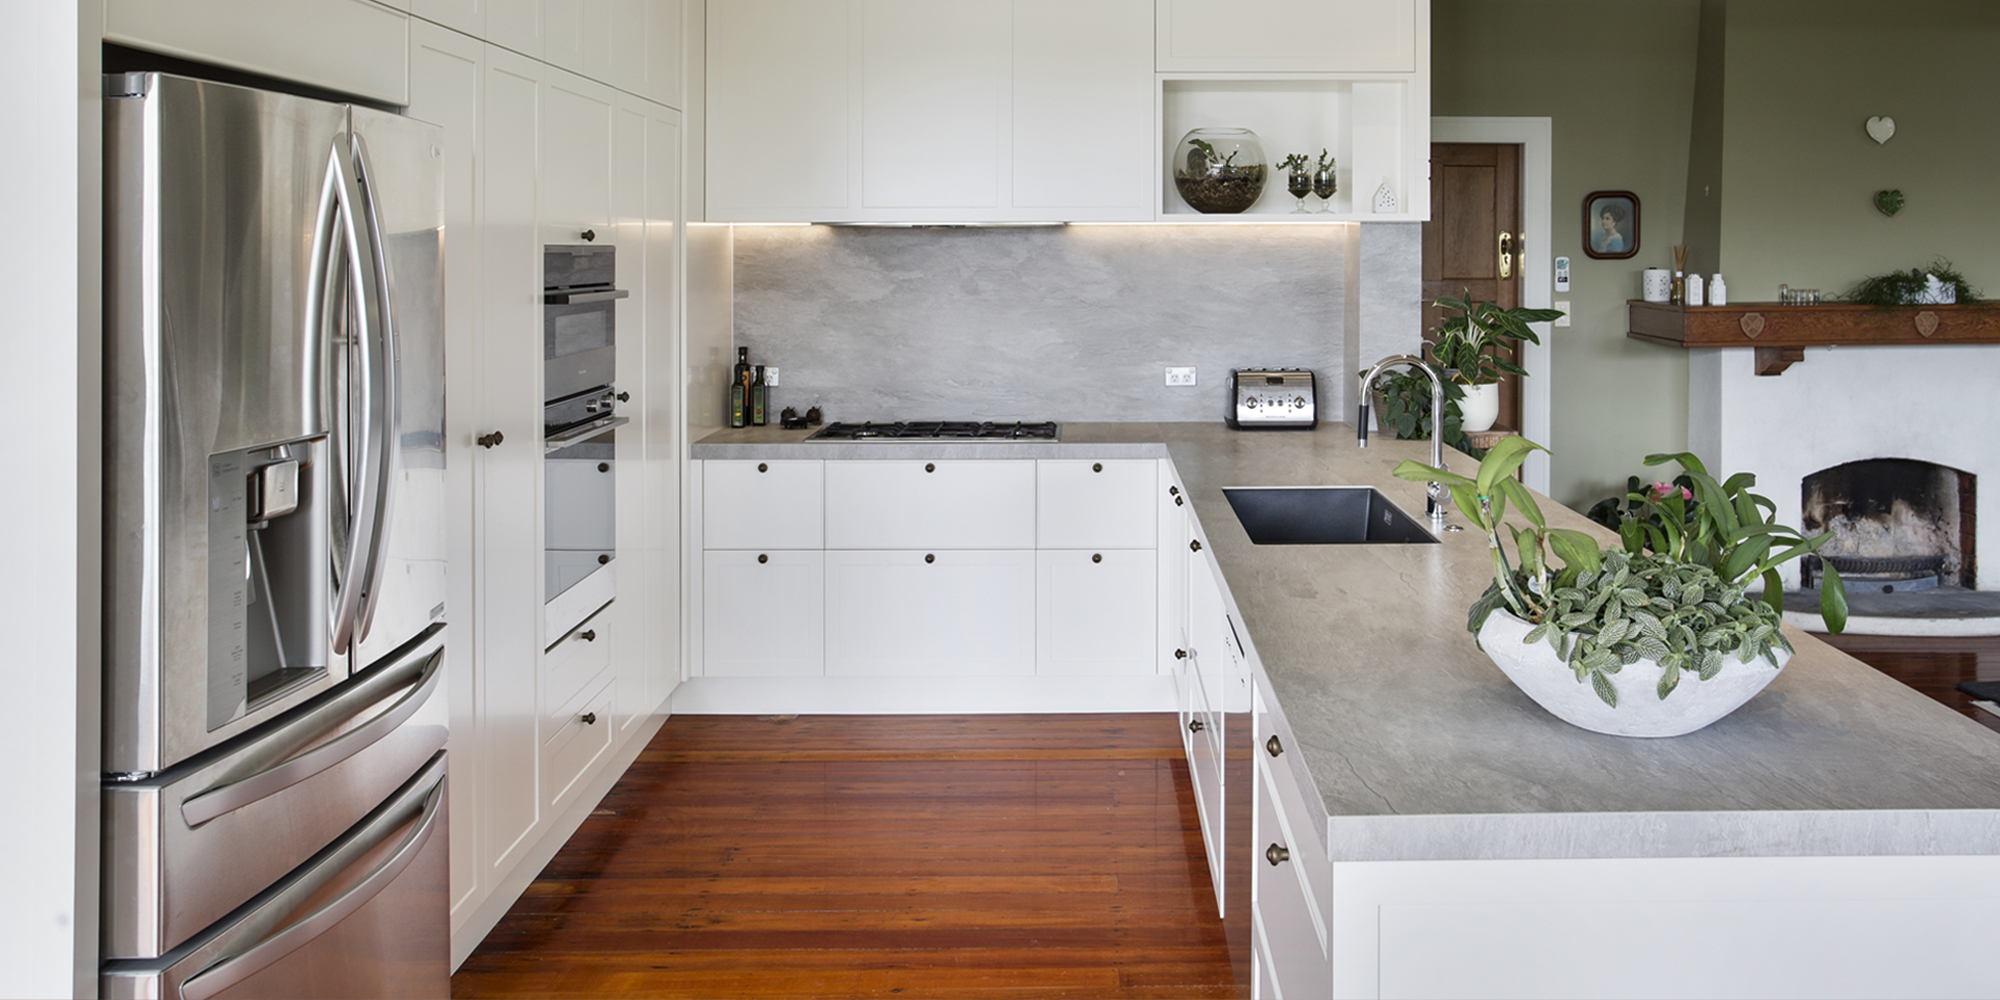 KBD-Bayswater-Kitchen-3.jpg